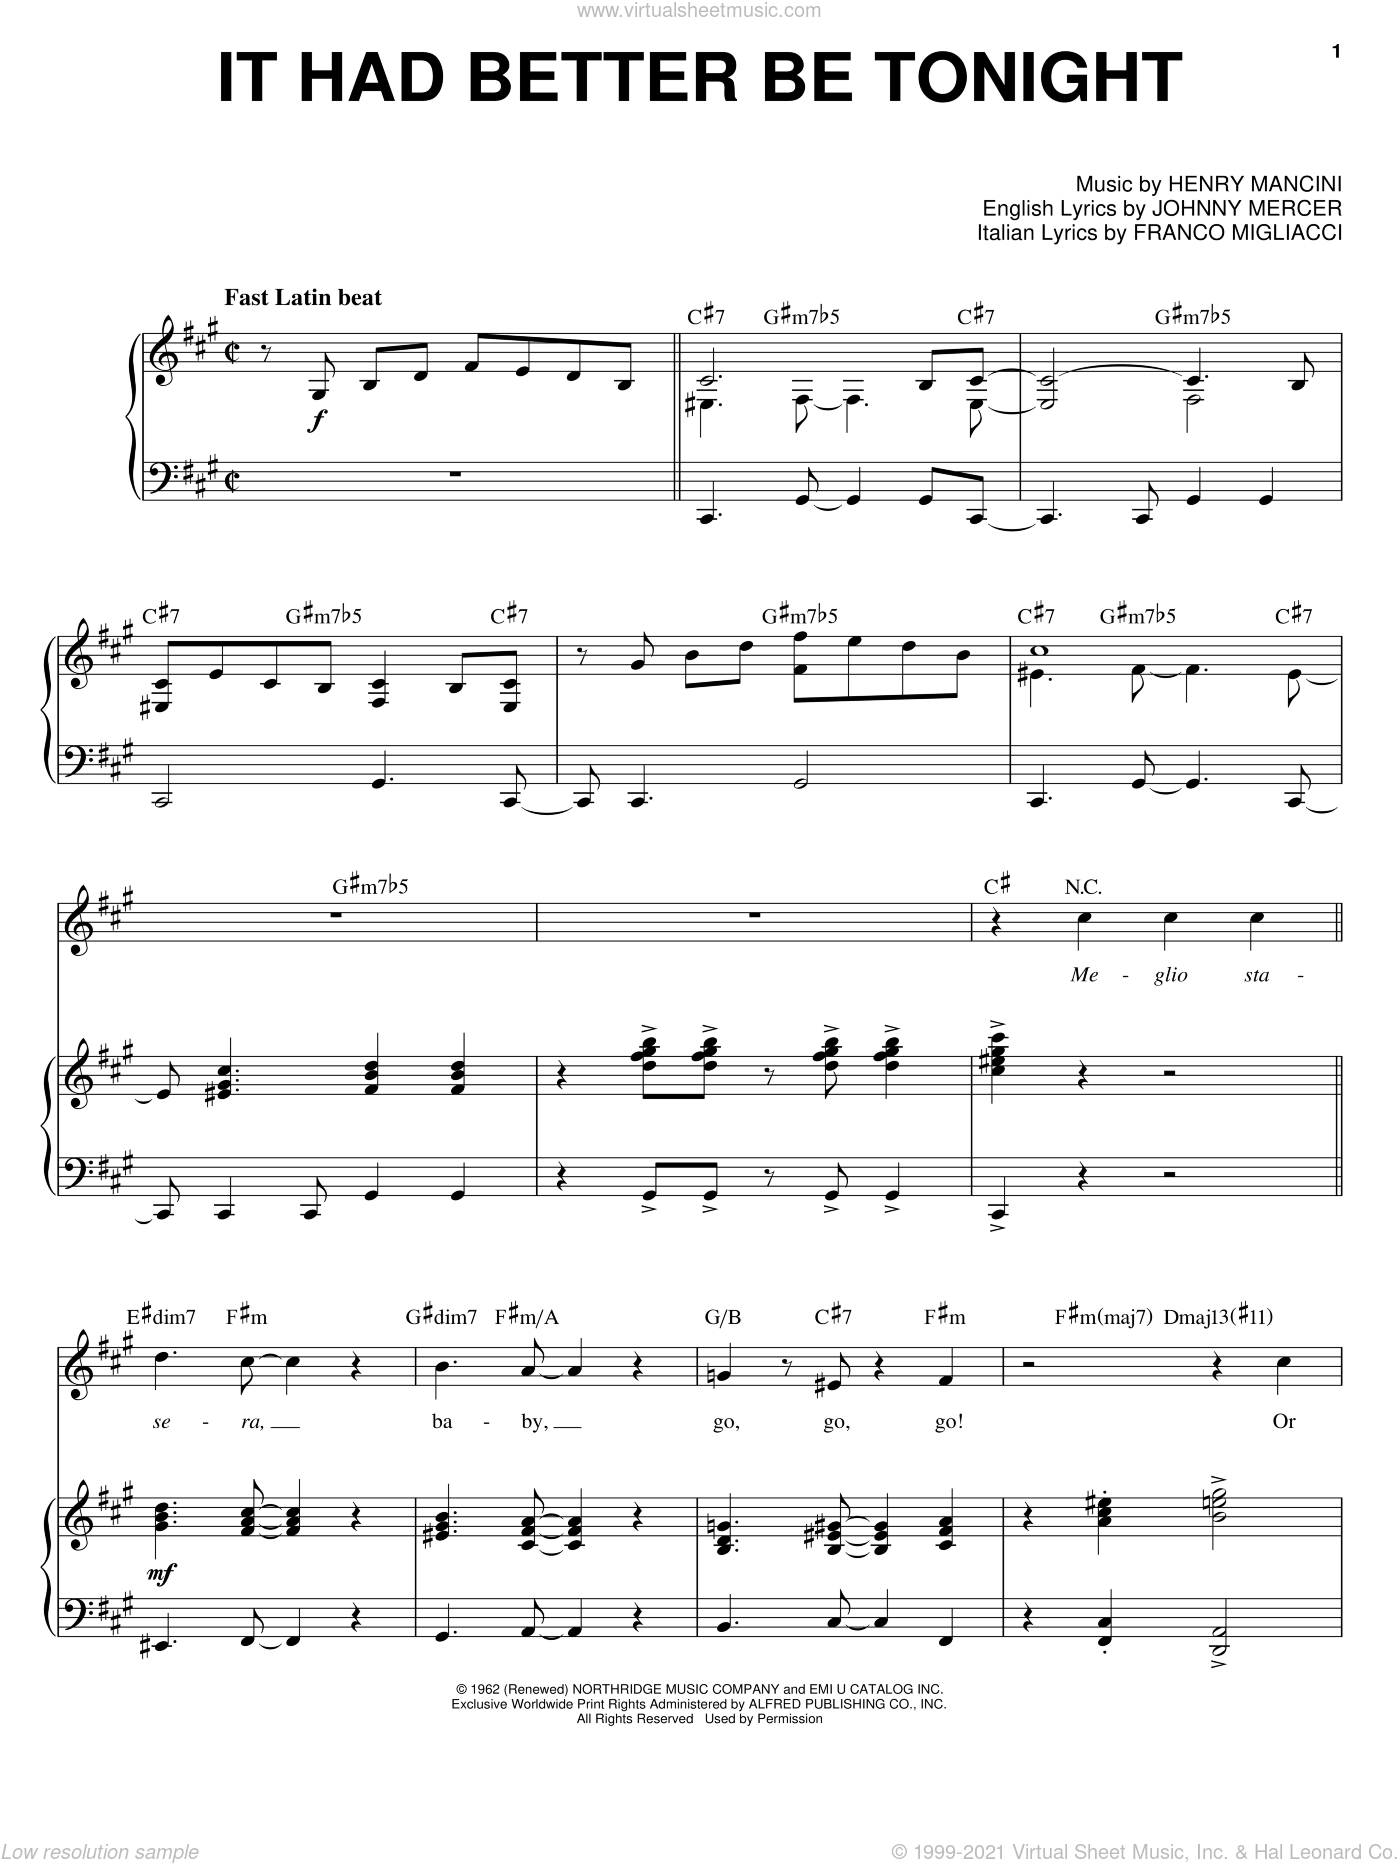 It Had Better Be Tonight sheet music for voice and piano by Michael Buble, Franco Migliacci, Henry Mancini and Johnny Mercer, intermediate skill level